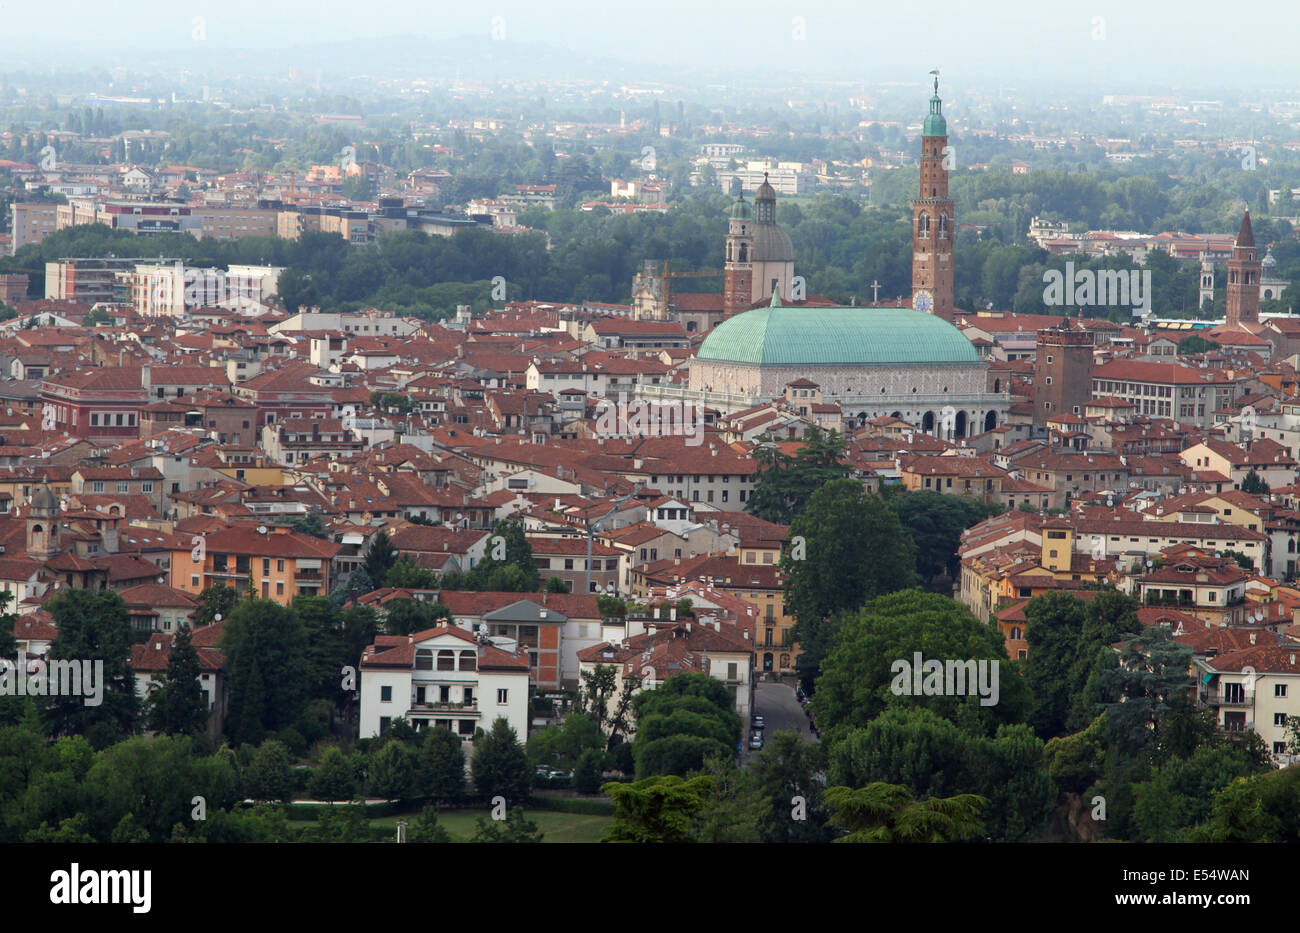 panoramic view of the city of Vicenza with the Basilica Palladiana and the high tower - Stock Image